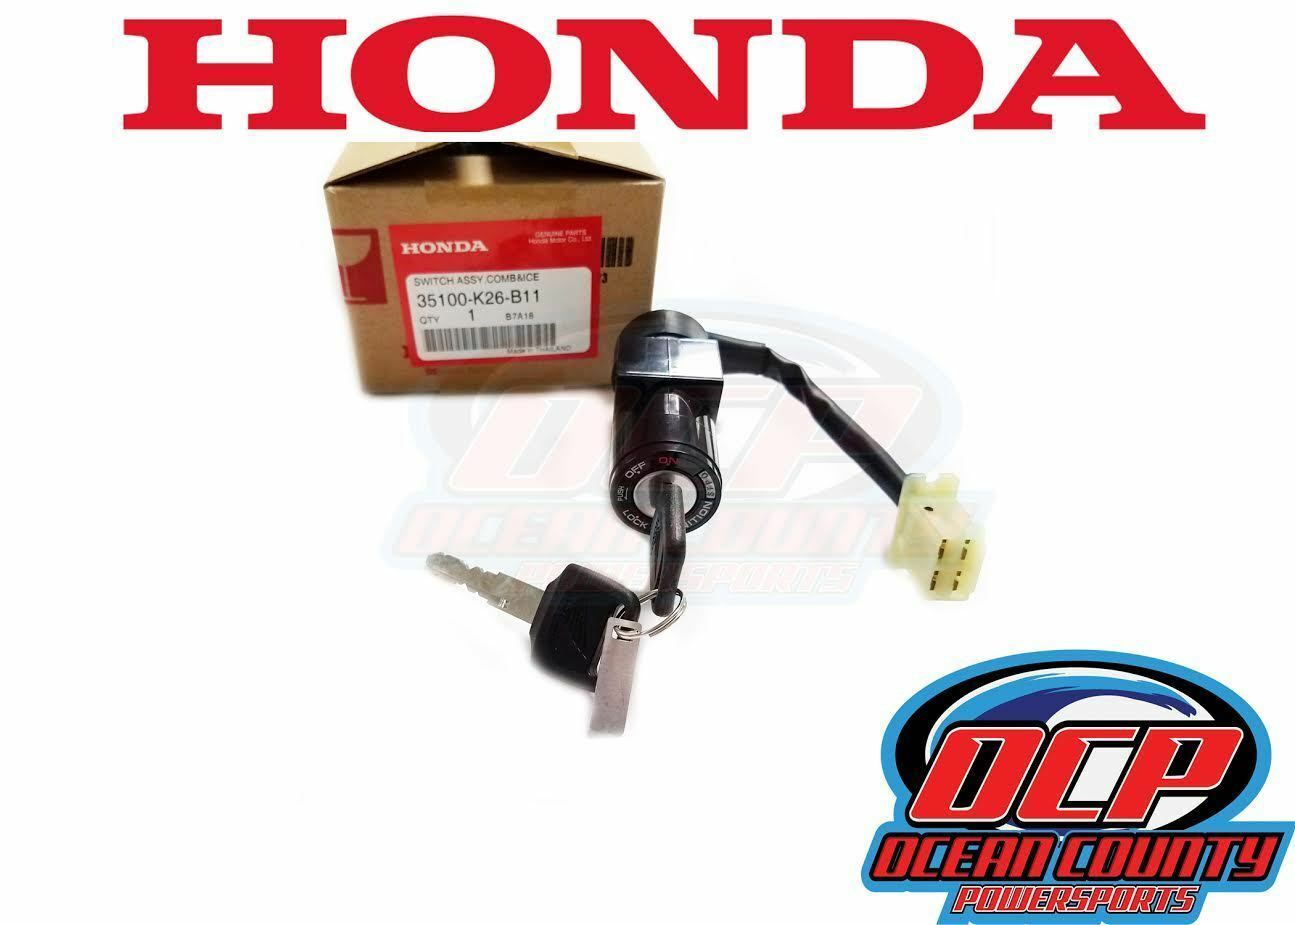 Honda 2017-2018 Grom Turn Signal Switch 35200-K26-B11 New Oem